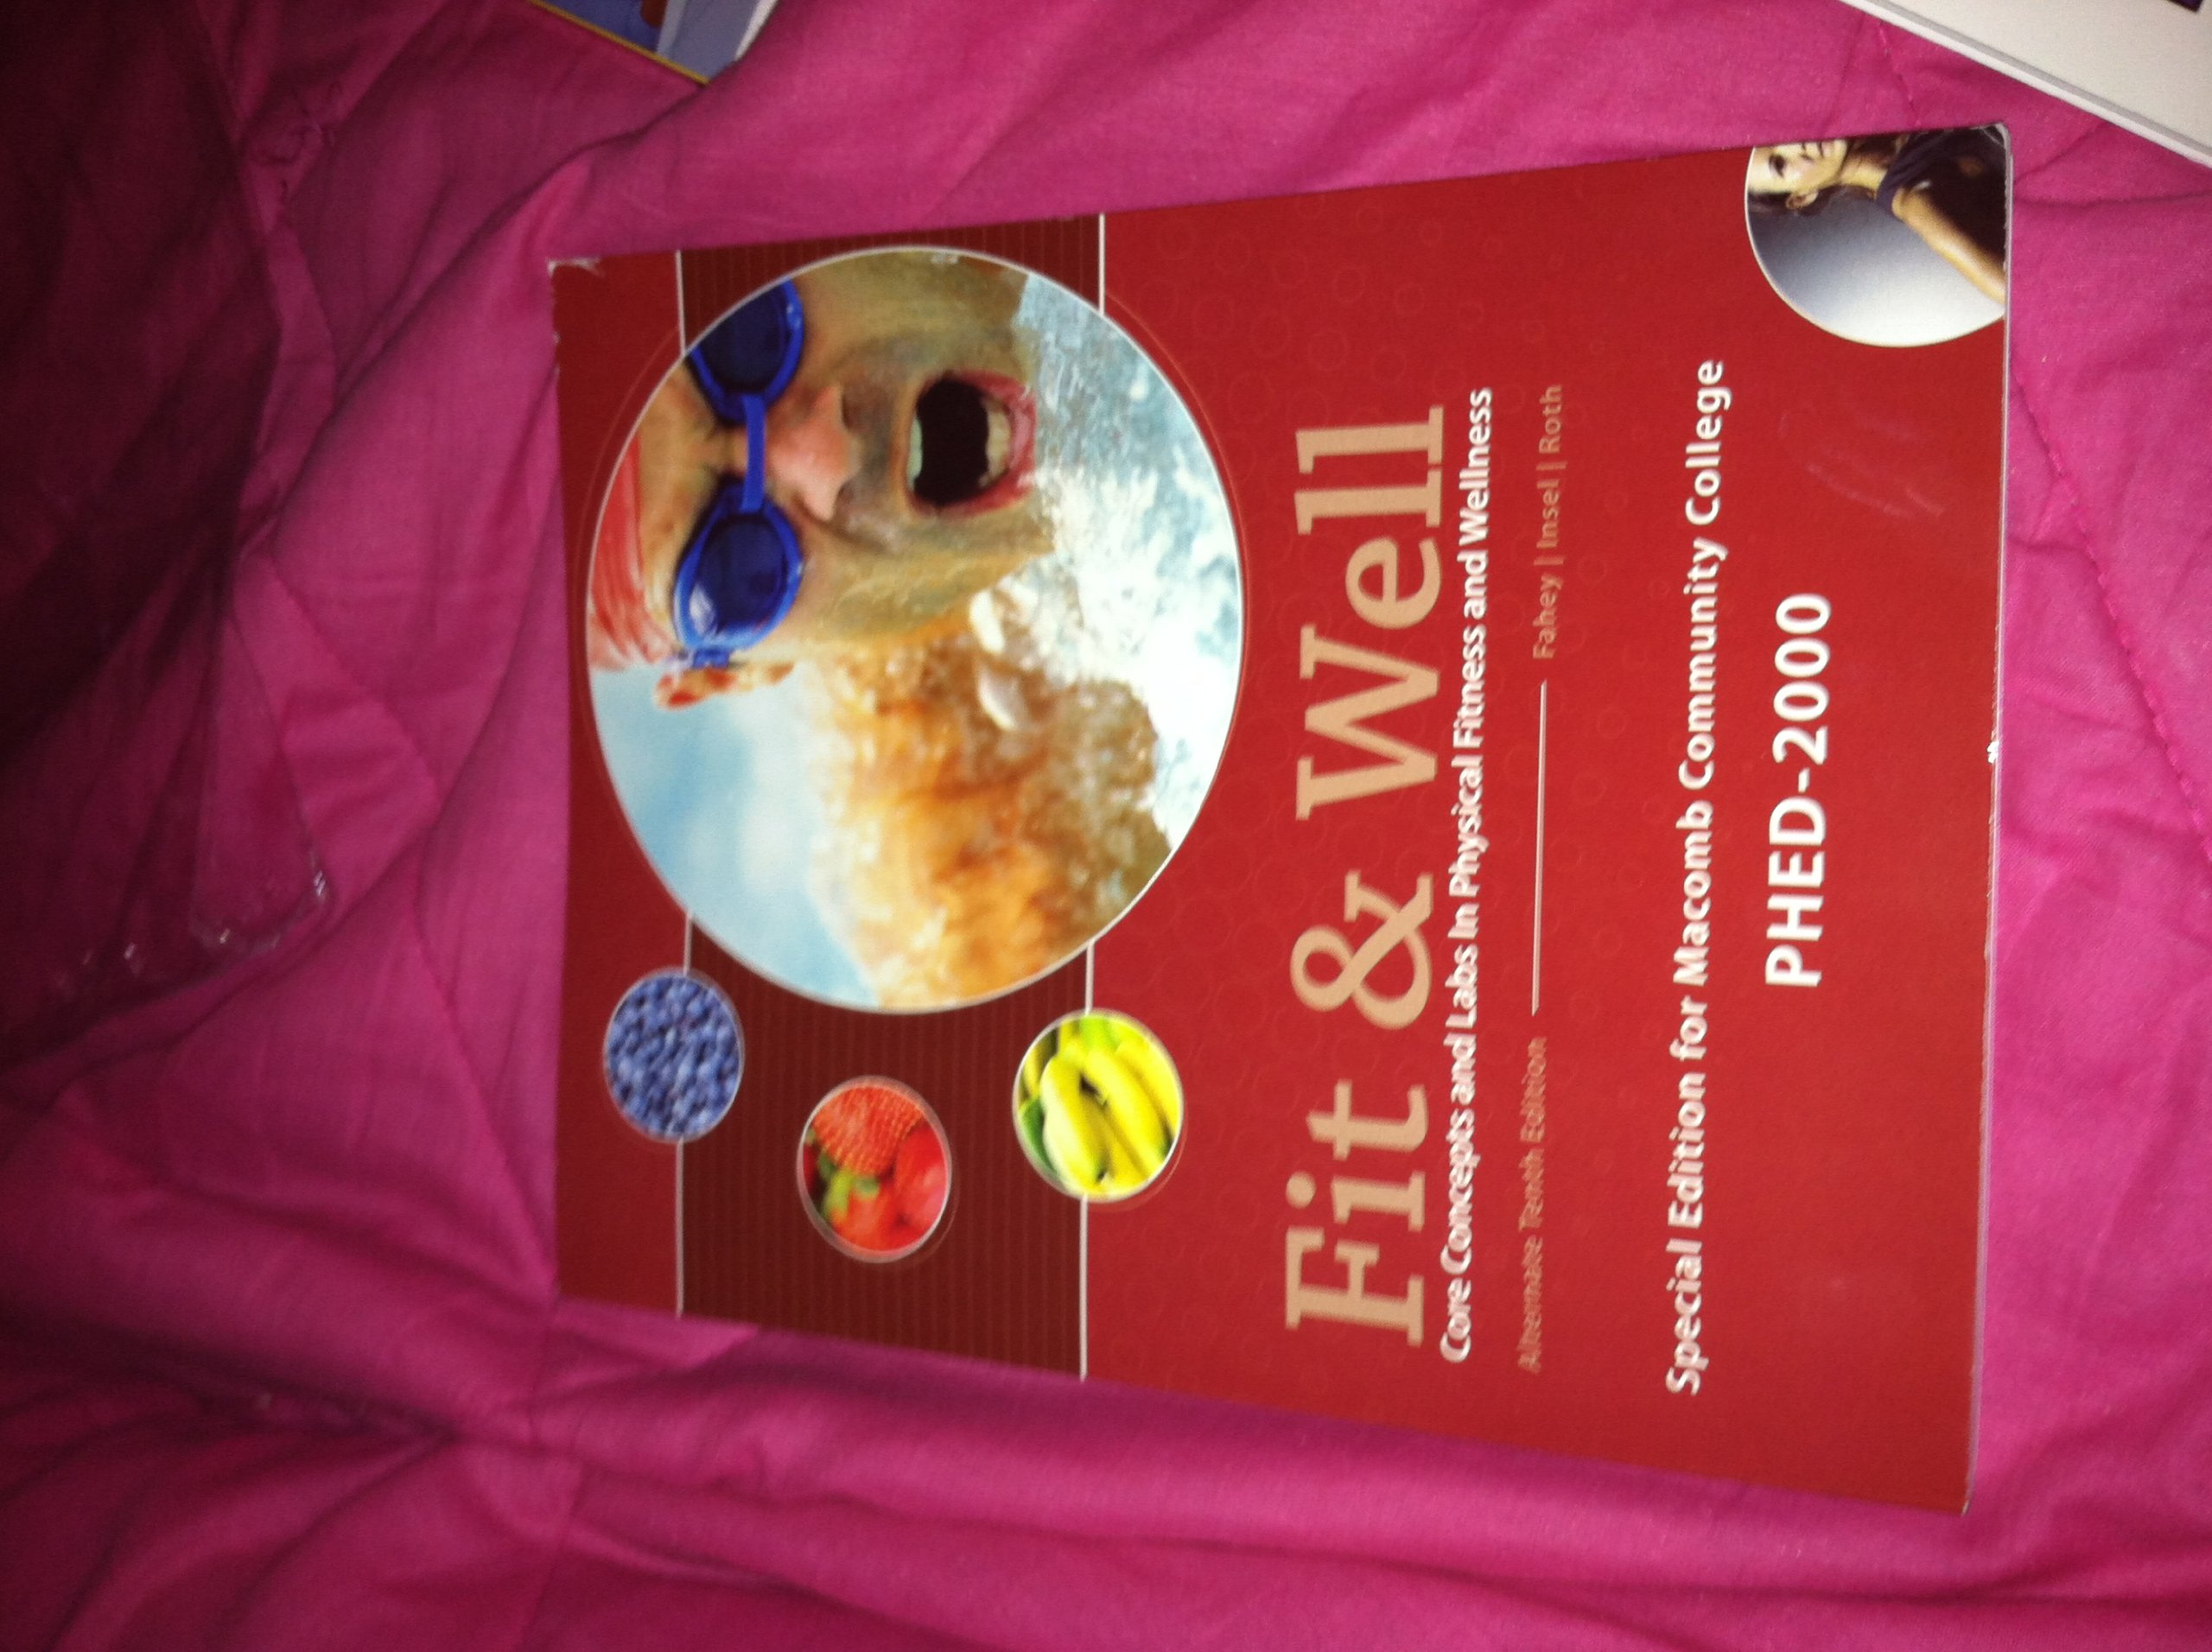 Fit well core concepts and labs in physical fitn faheyinselroth fit well core concepts and labs in physical fitn faheyinselroth 9780077653330 amazon books fandeluxe Images